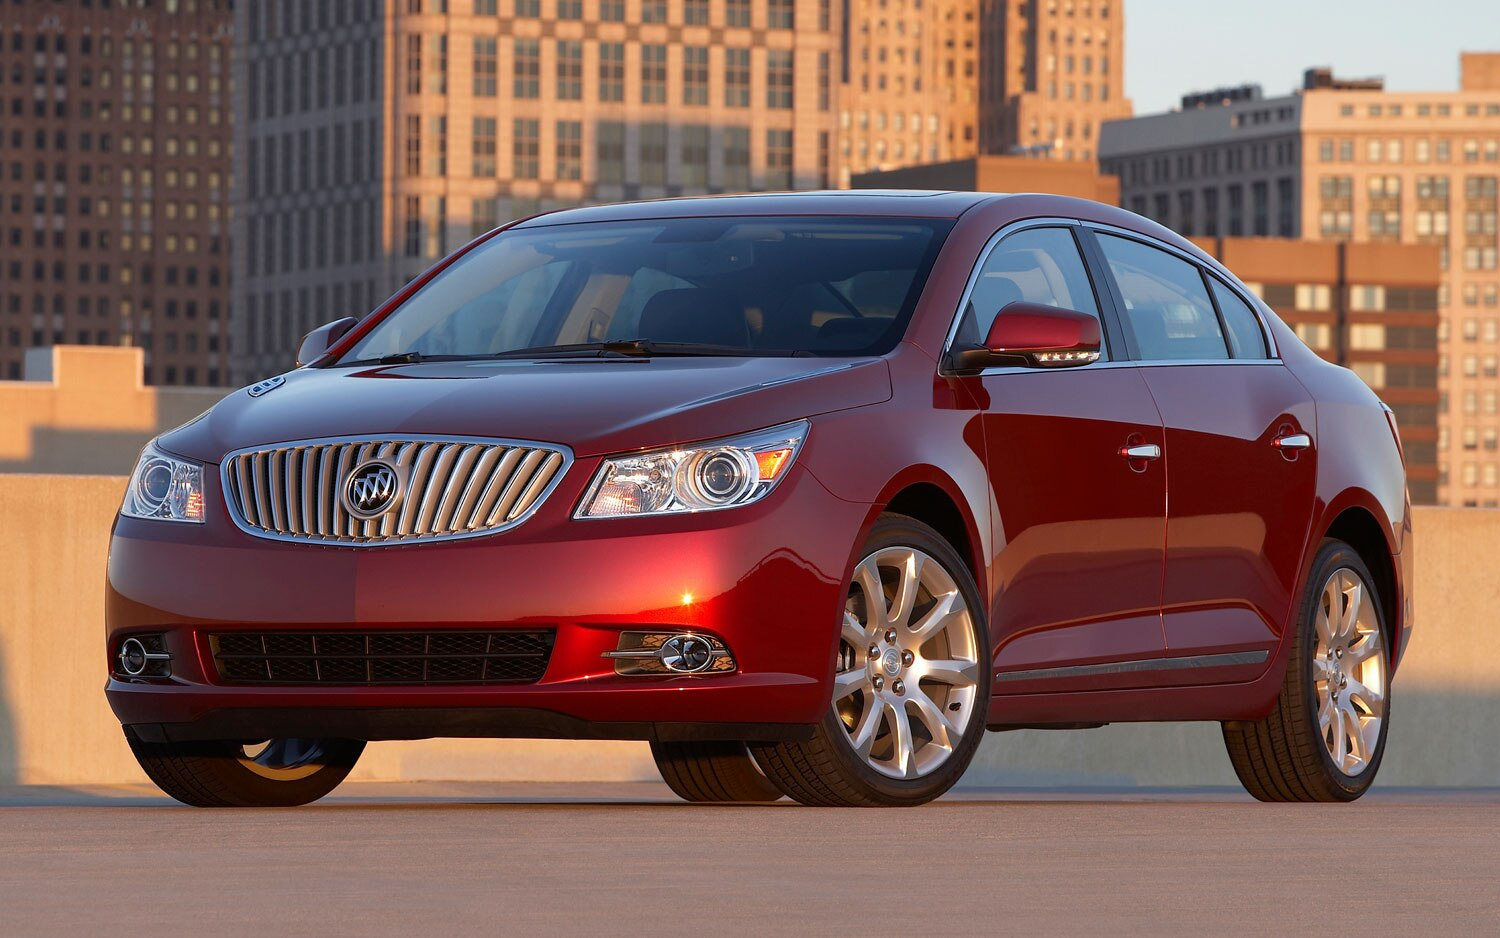 2012 buick lacrosse eassist priced from 30 820. Black Bedroom Furniture Sets. Home Design Ideas